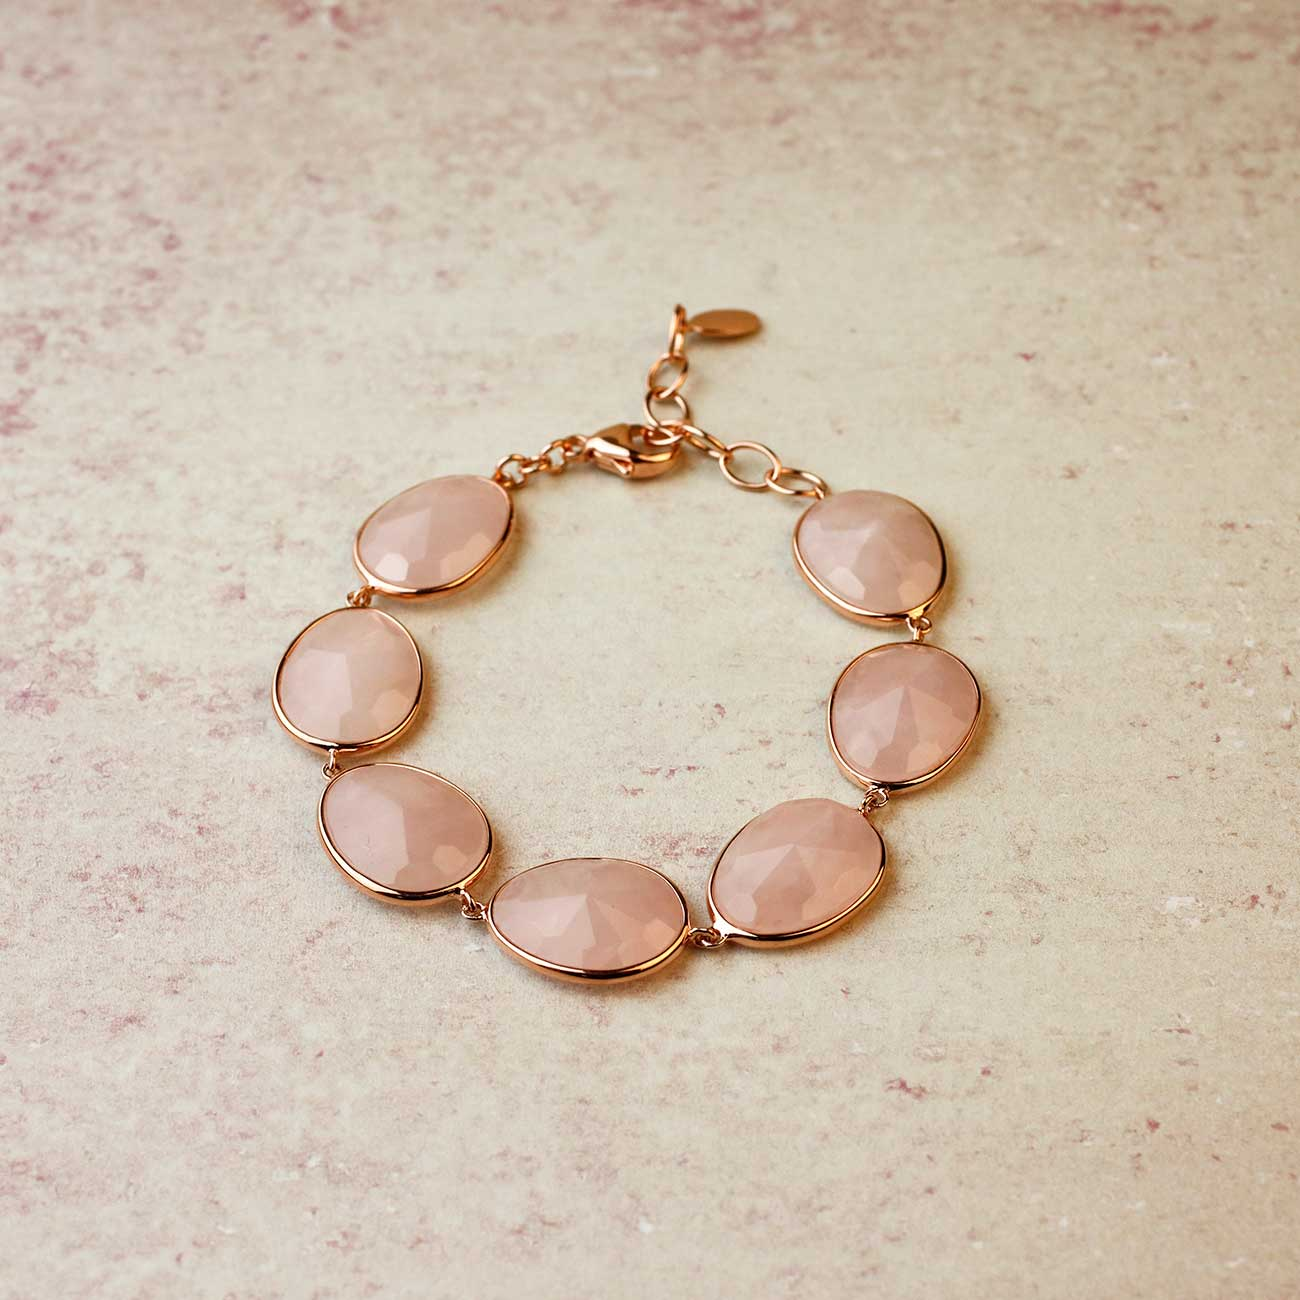 Rose Quartz and Silver Bracelet